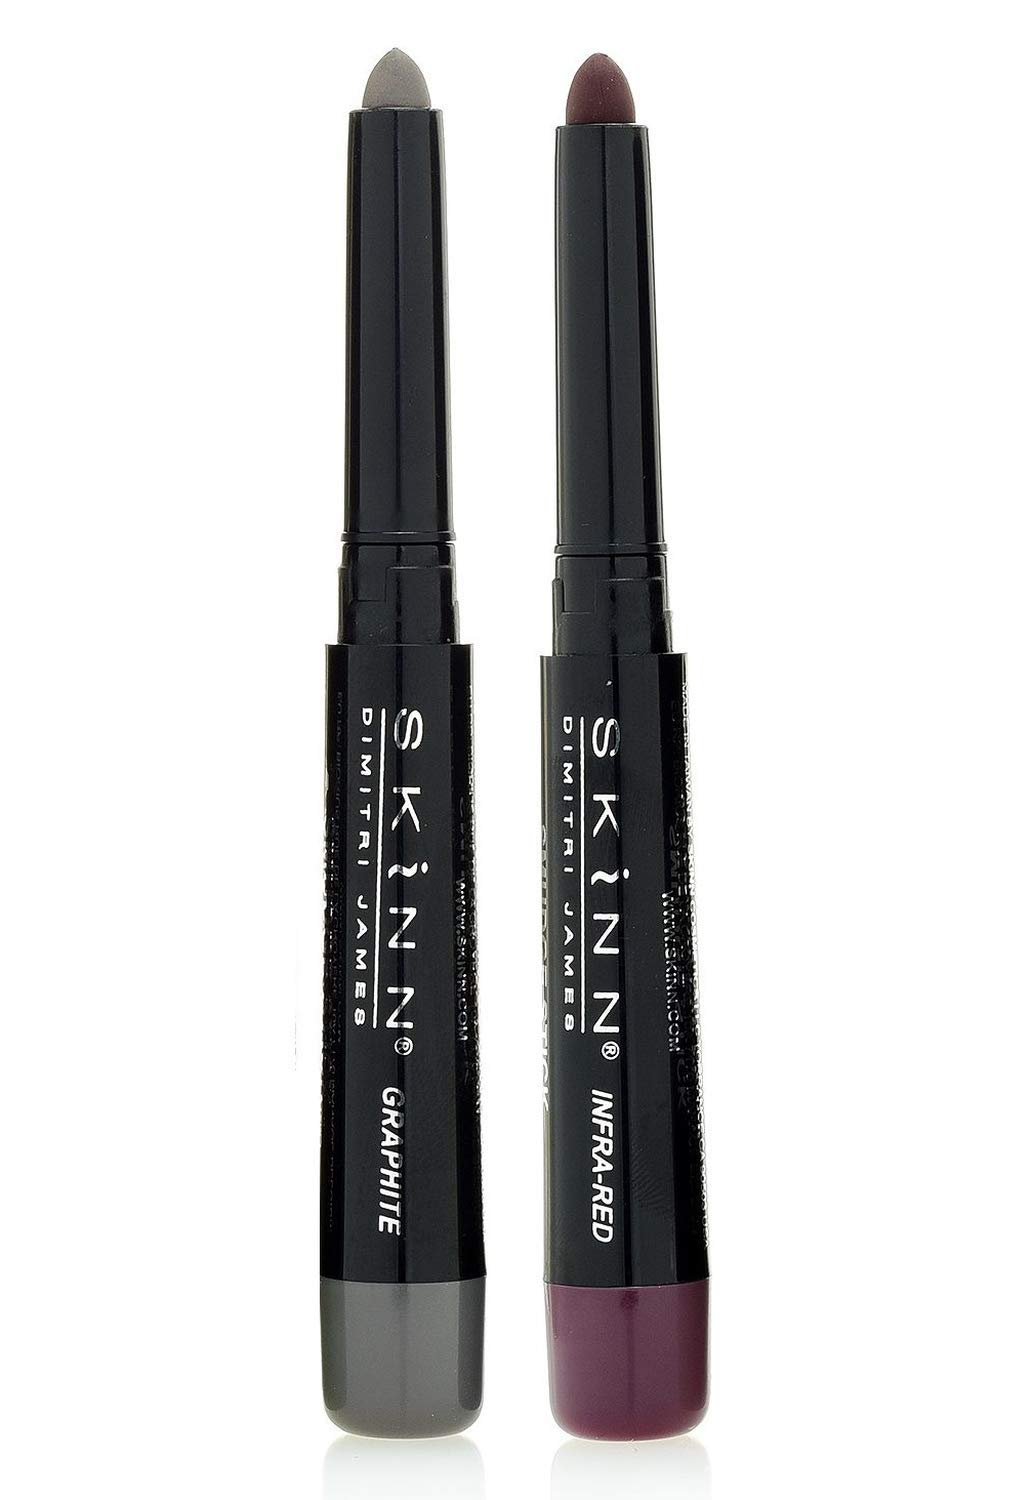 Skinn Cosmetics Smudge Stick for Eyes - Set of 2 Eye Pencils - Graphite & Infrared